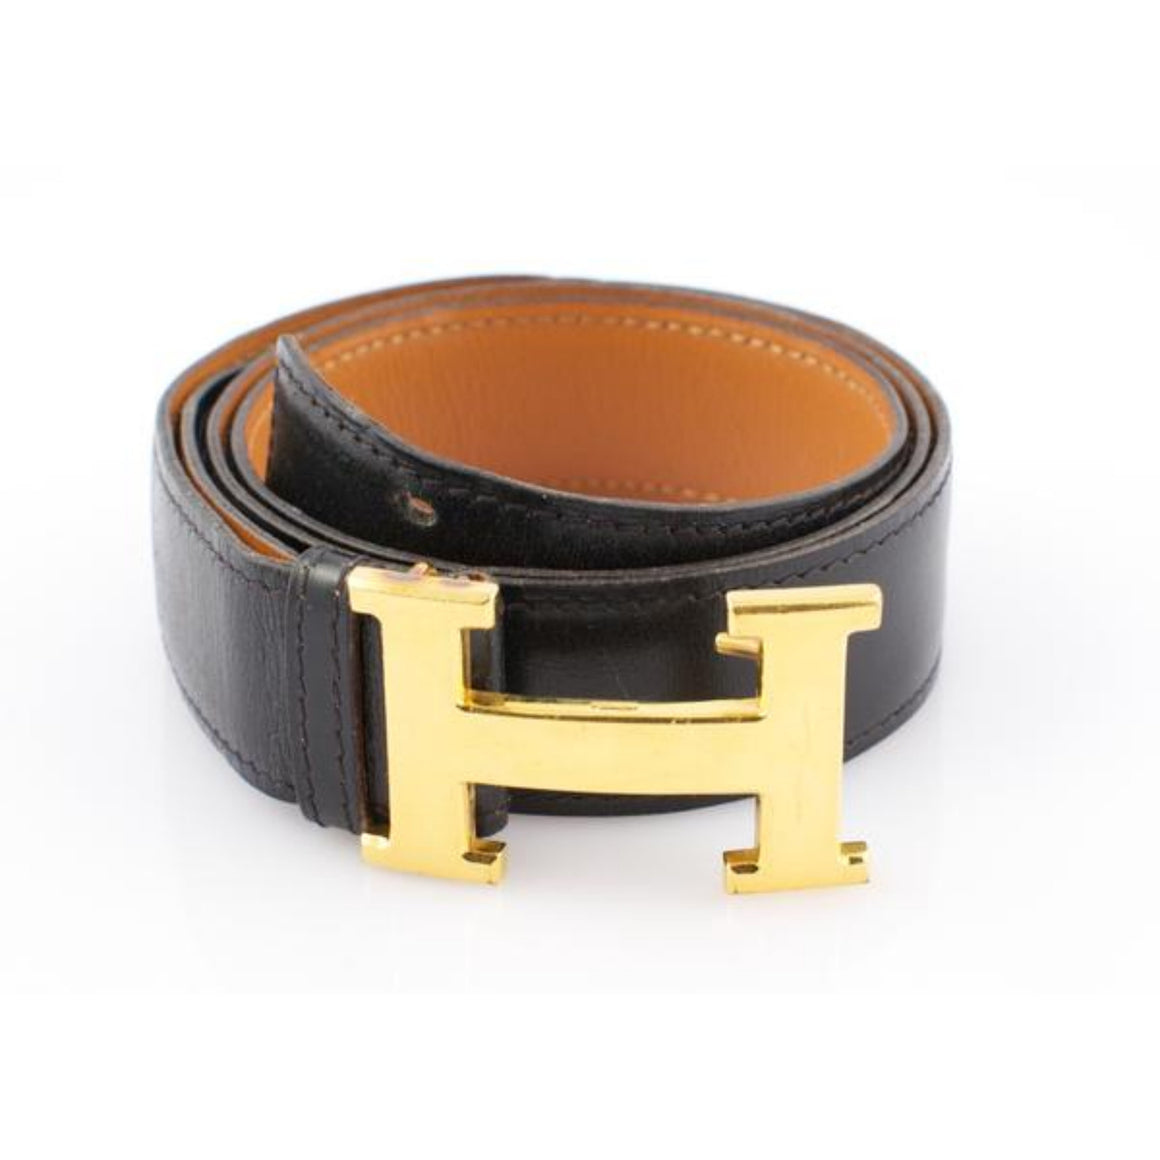 'Hermes of Paris 'H' Brass Buckle Belt'